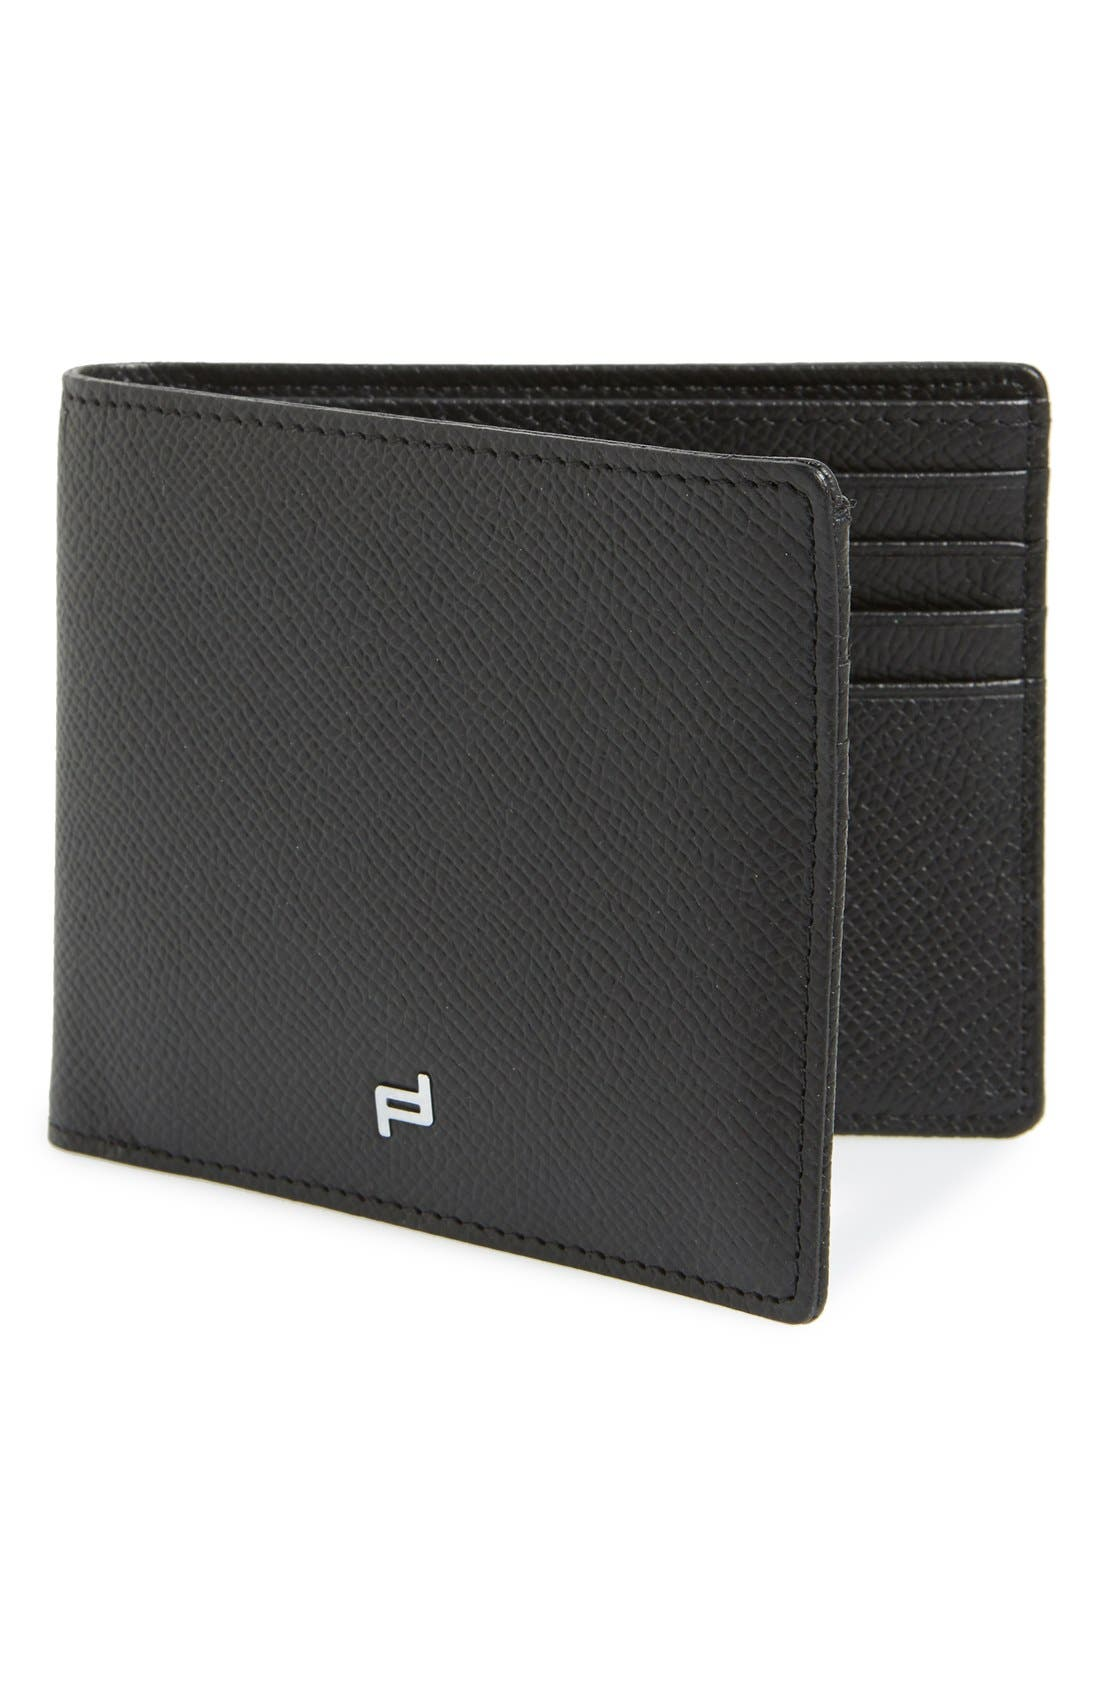 'FC 3.0'' Leather Bifold Wallet,                             Main thumbnail 1, color,                             Black